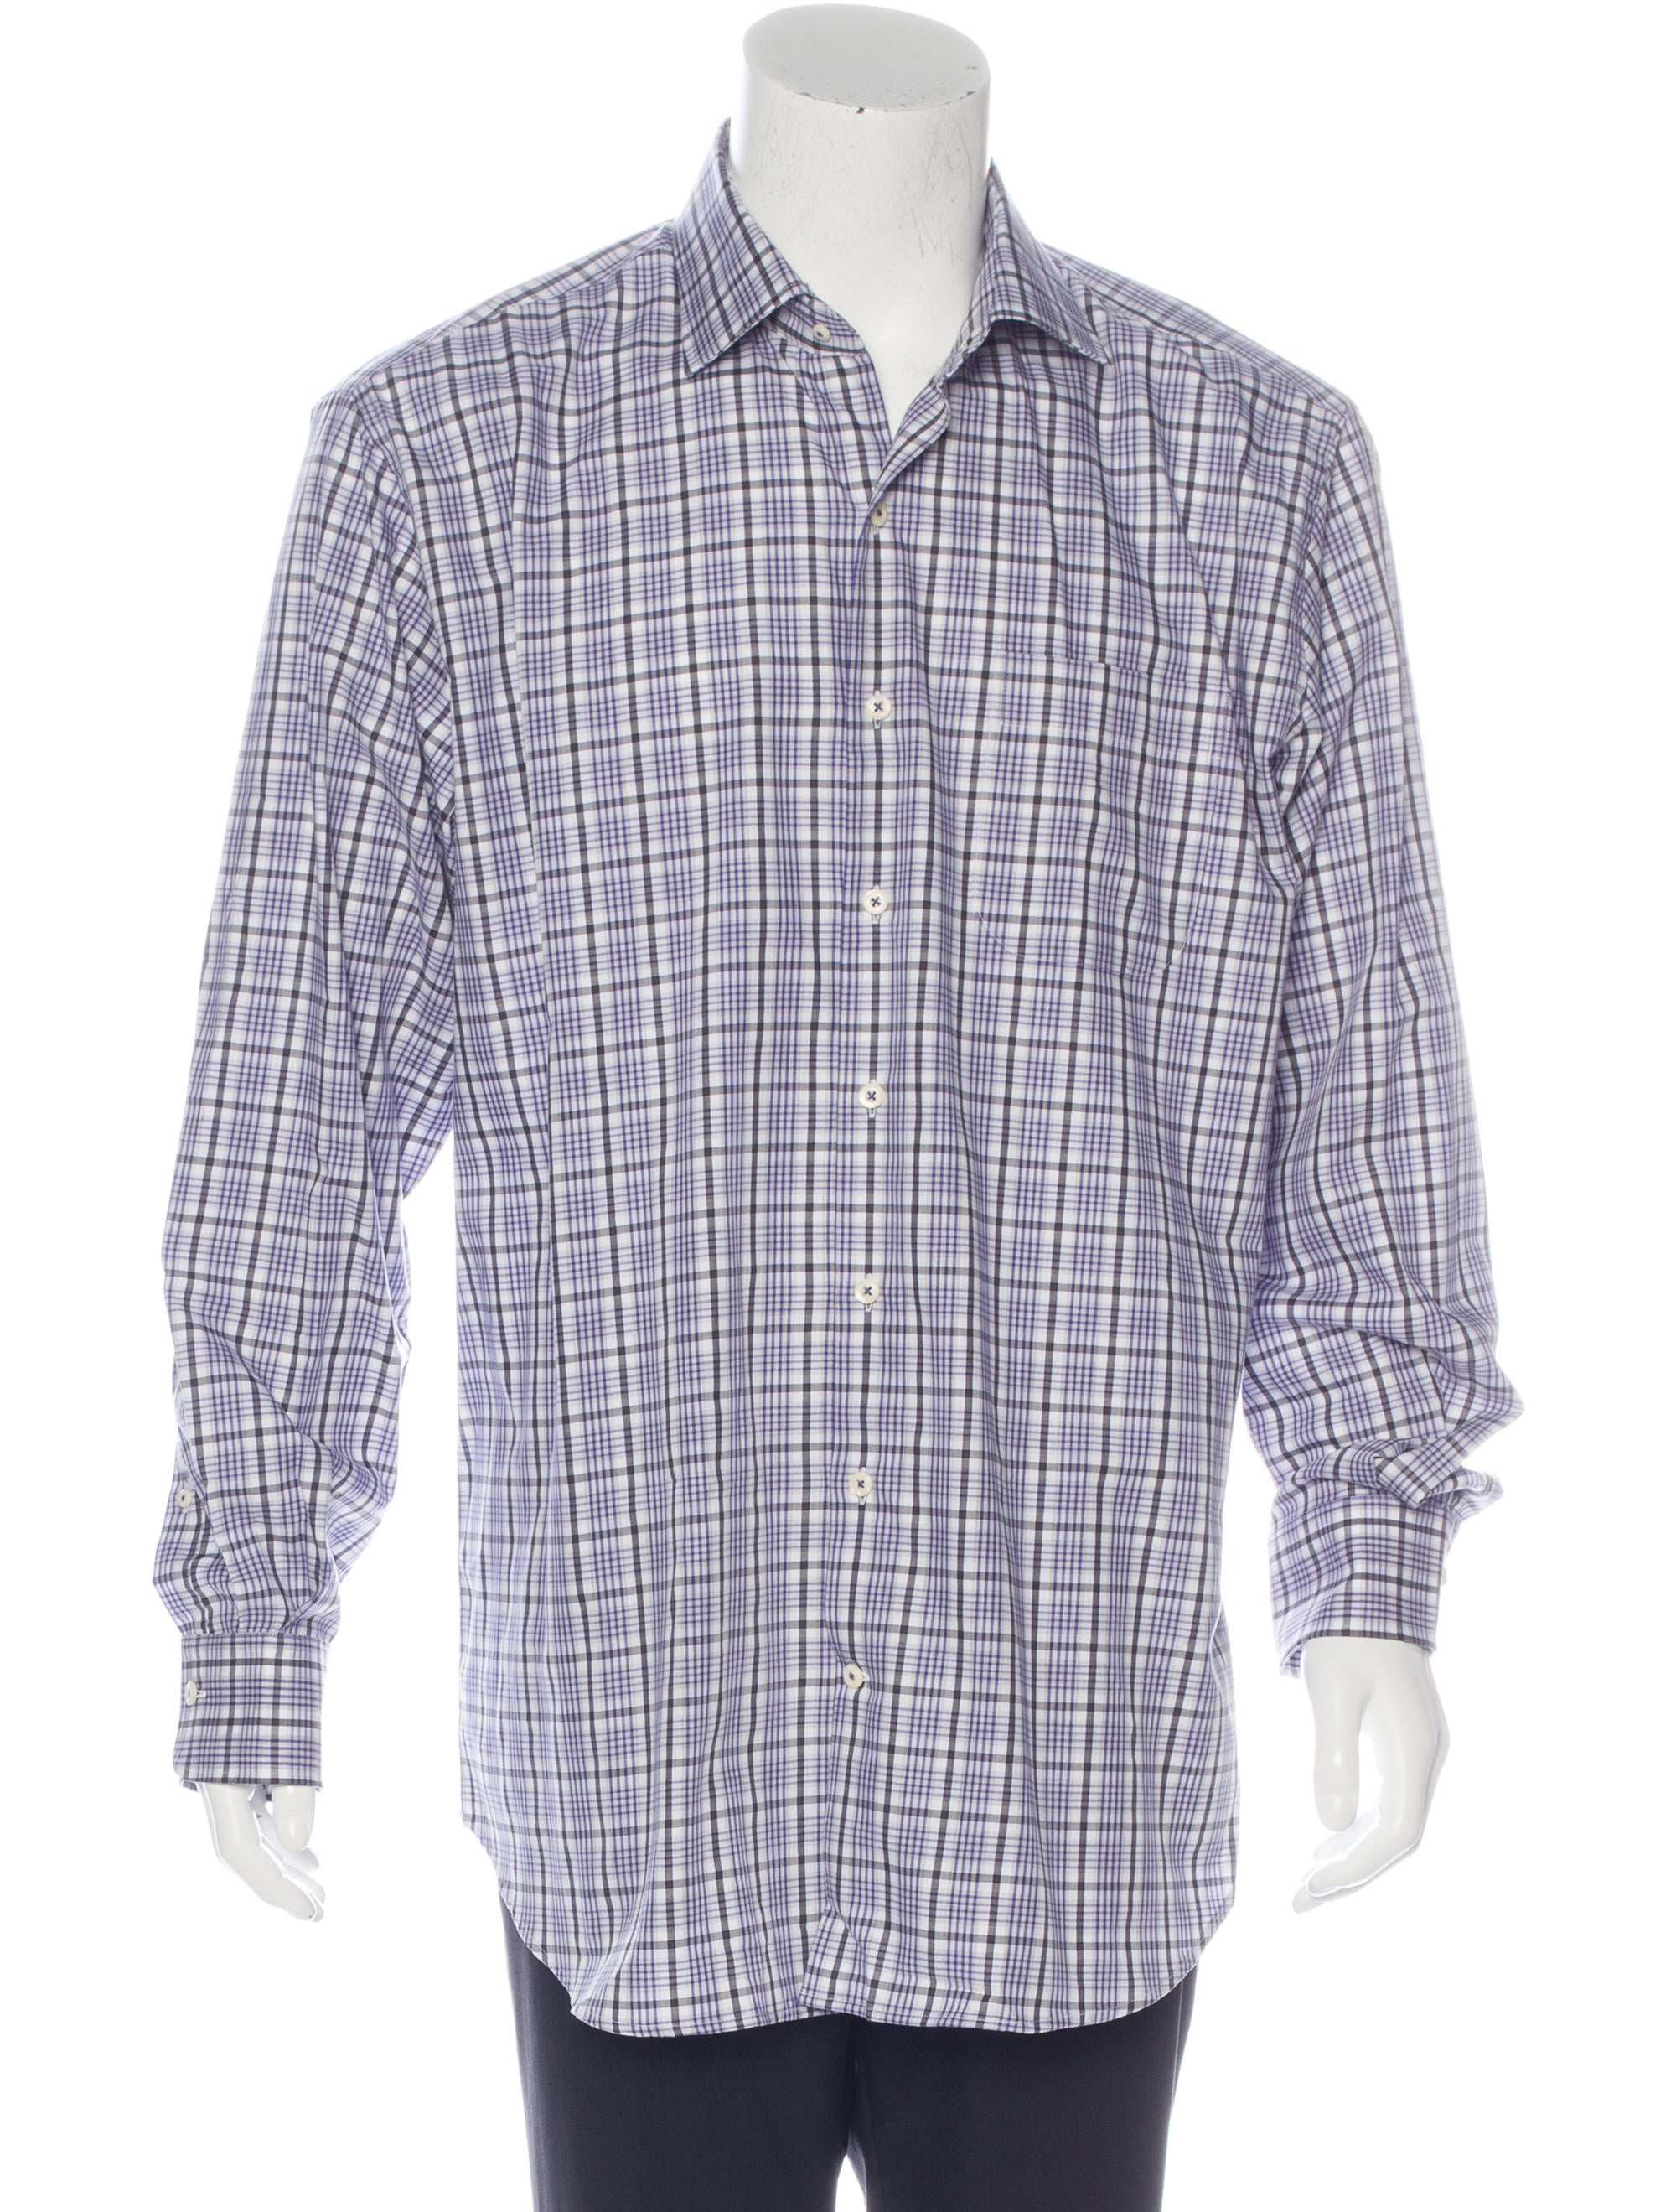 Peter Millar Plaid Long Sleeve Shirt W Tags Clothing